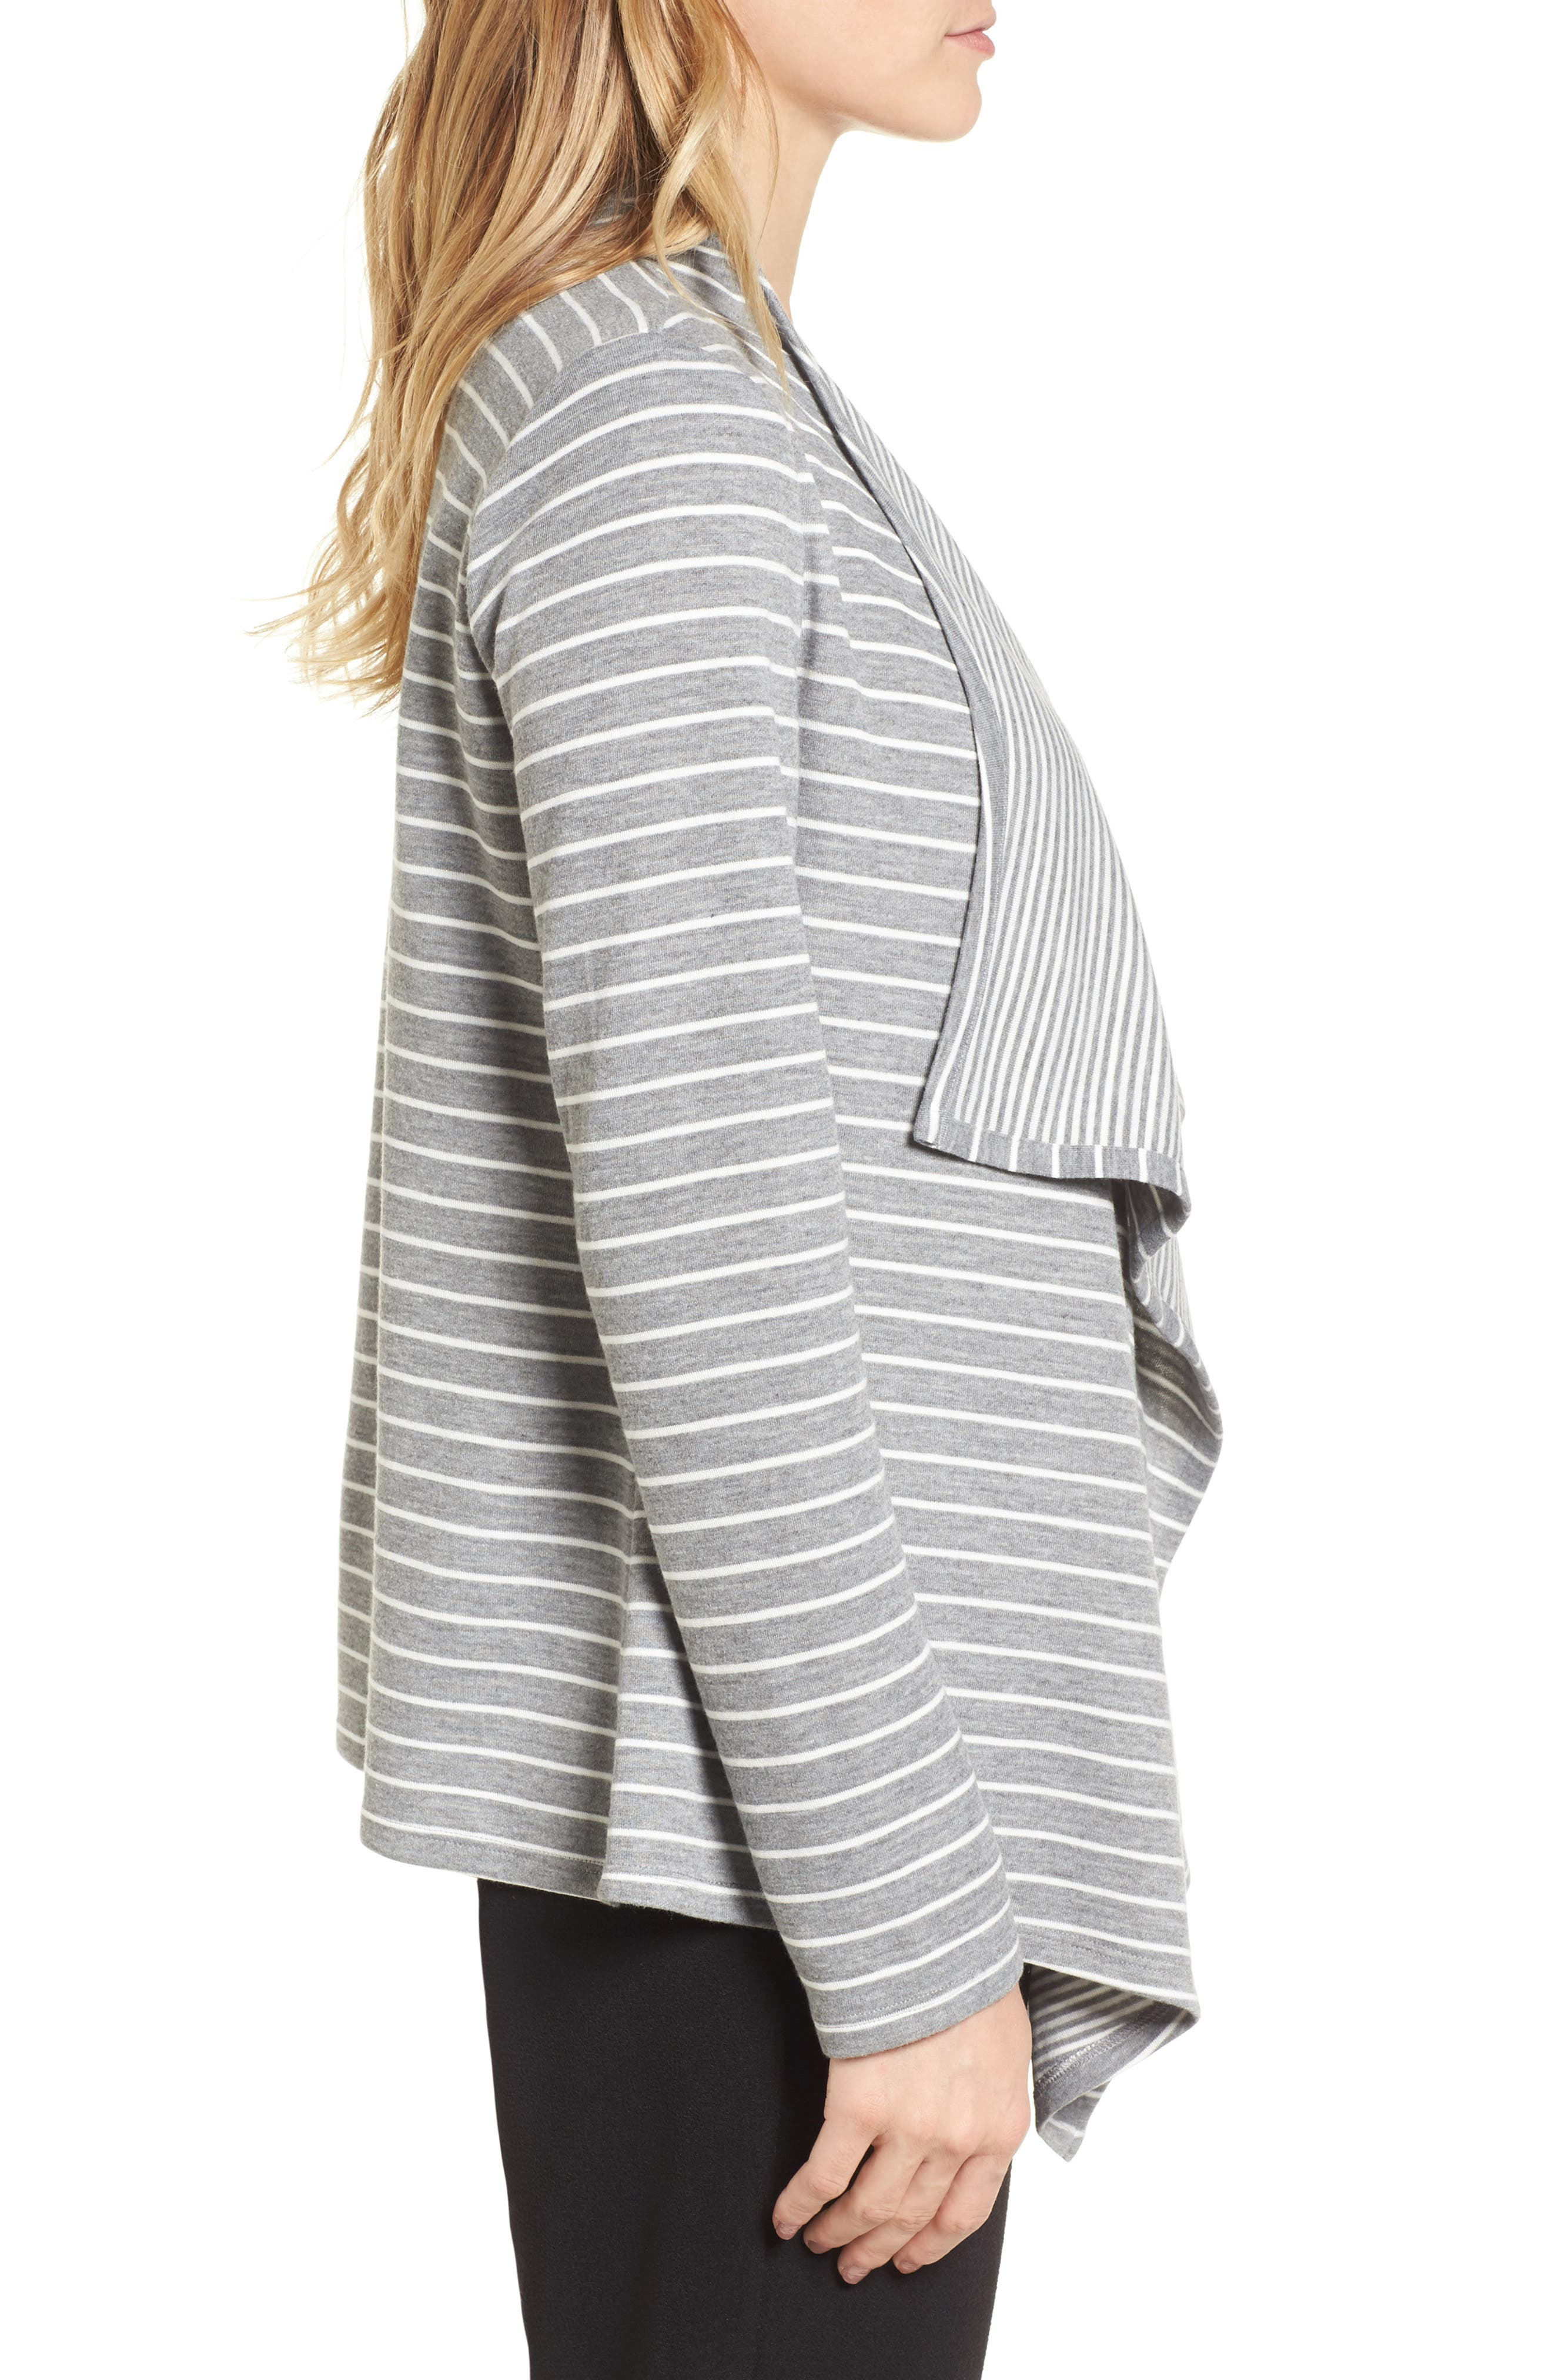 Mixed Stripe Cardigan,                             Alternate thumbnail 3, color,                             050-Grey Heather